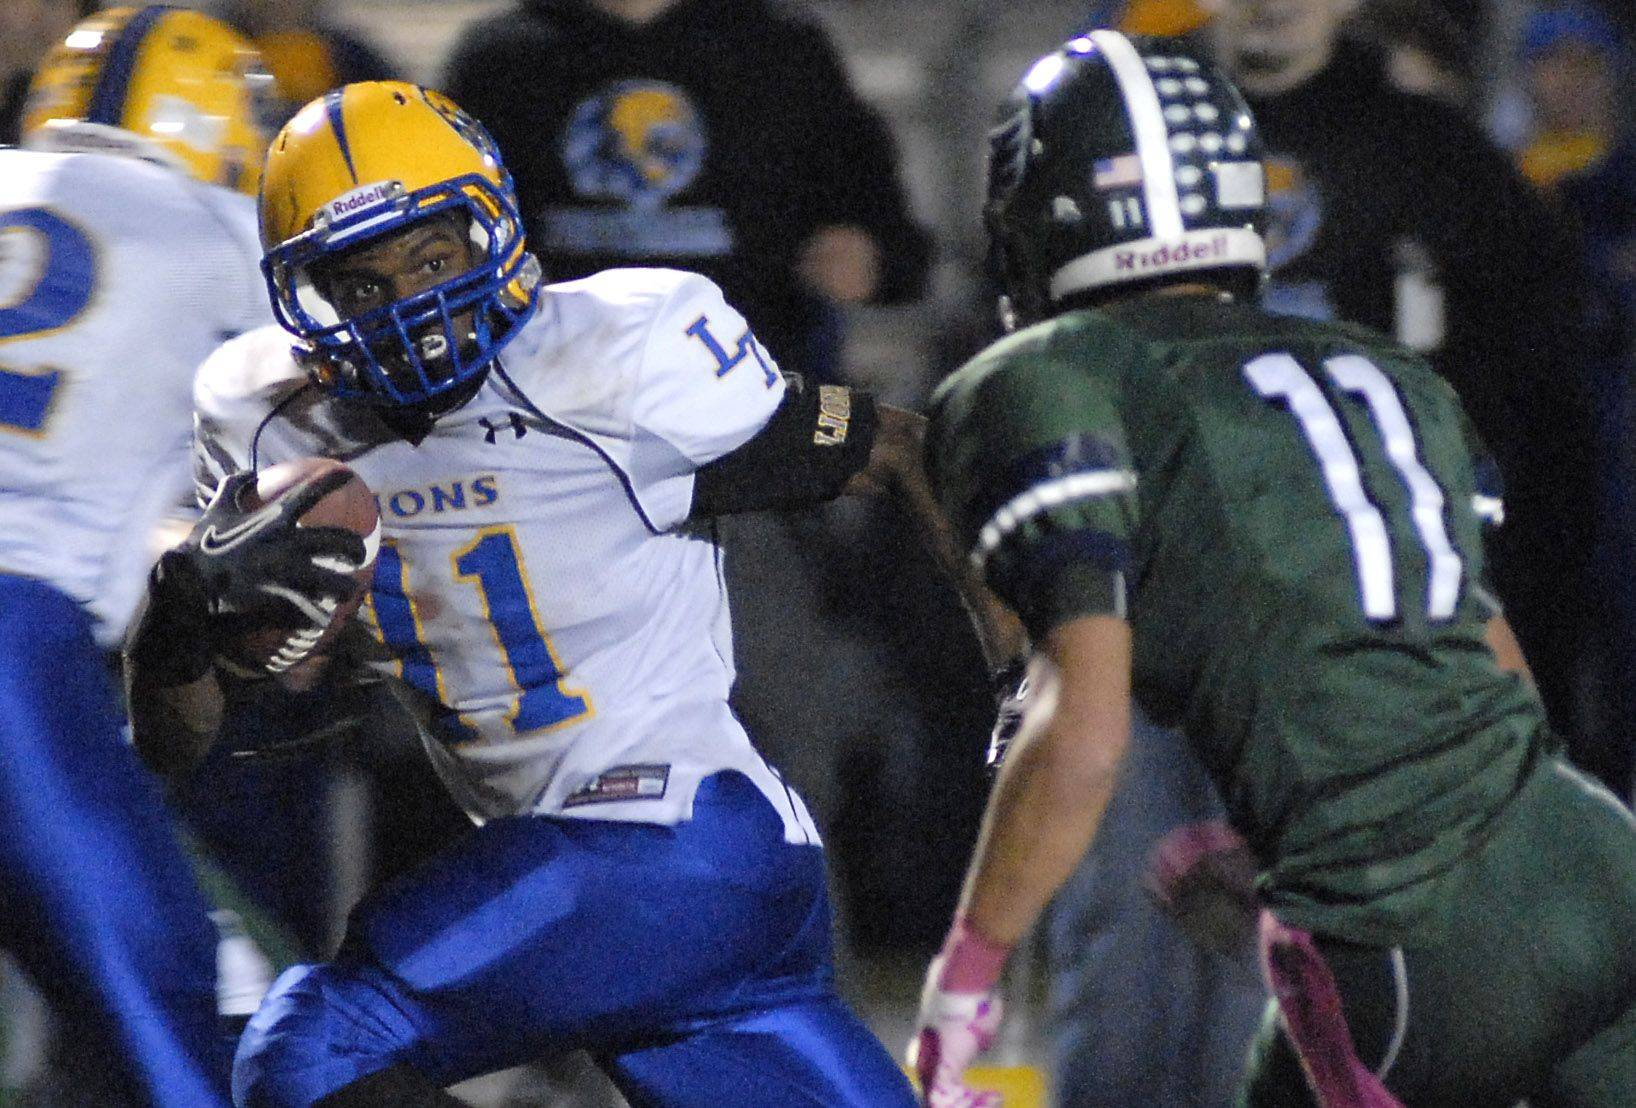 Lyons Township's Matthew Harris zips past Bartlett's Kyle Garcia to make the touchdown in the fourth quarter to secure their win over the Hawks.